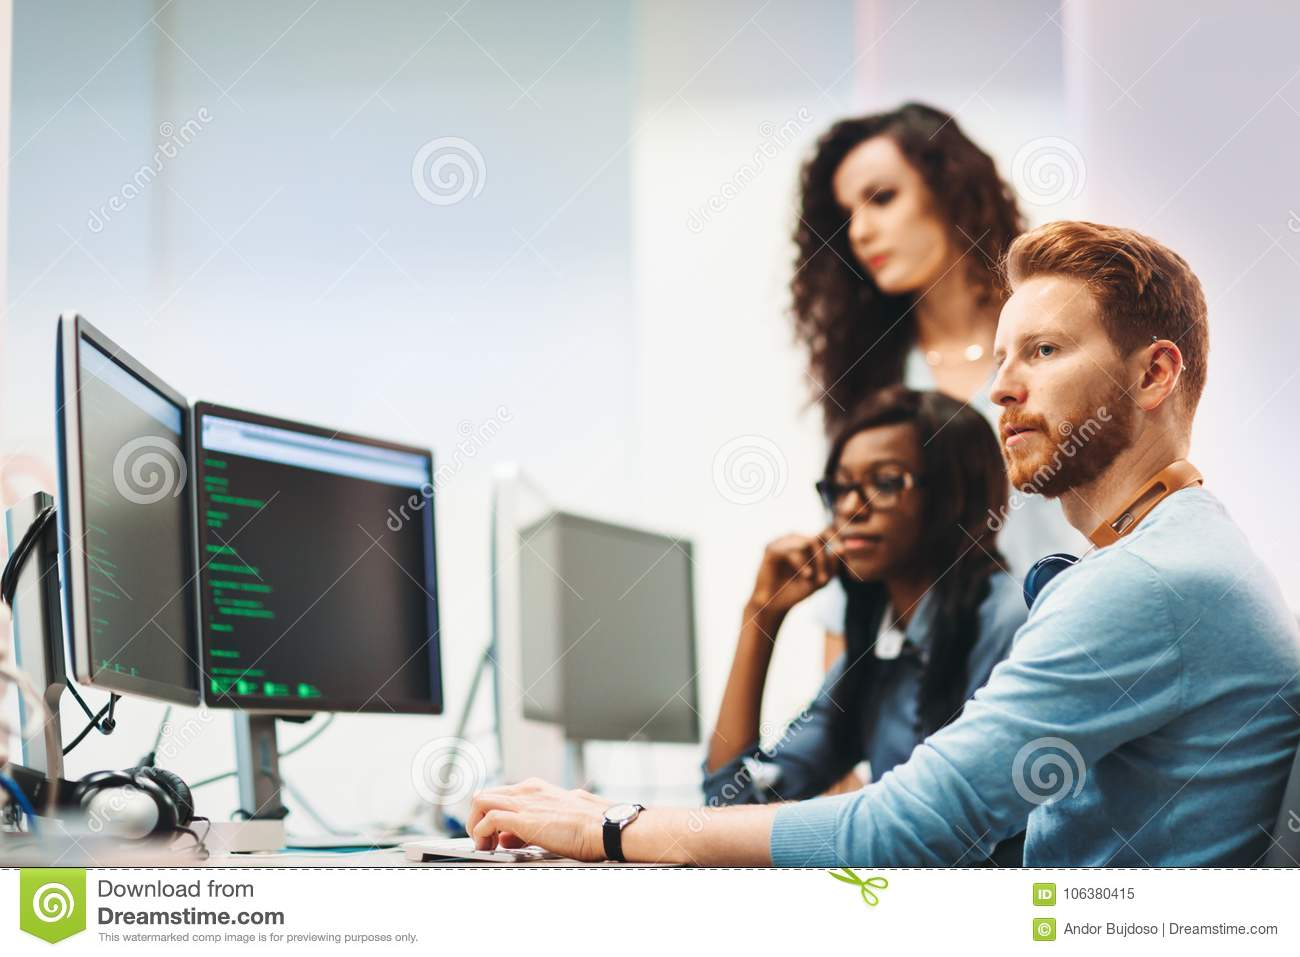 Software engineers working on project and programming in company